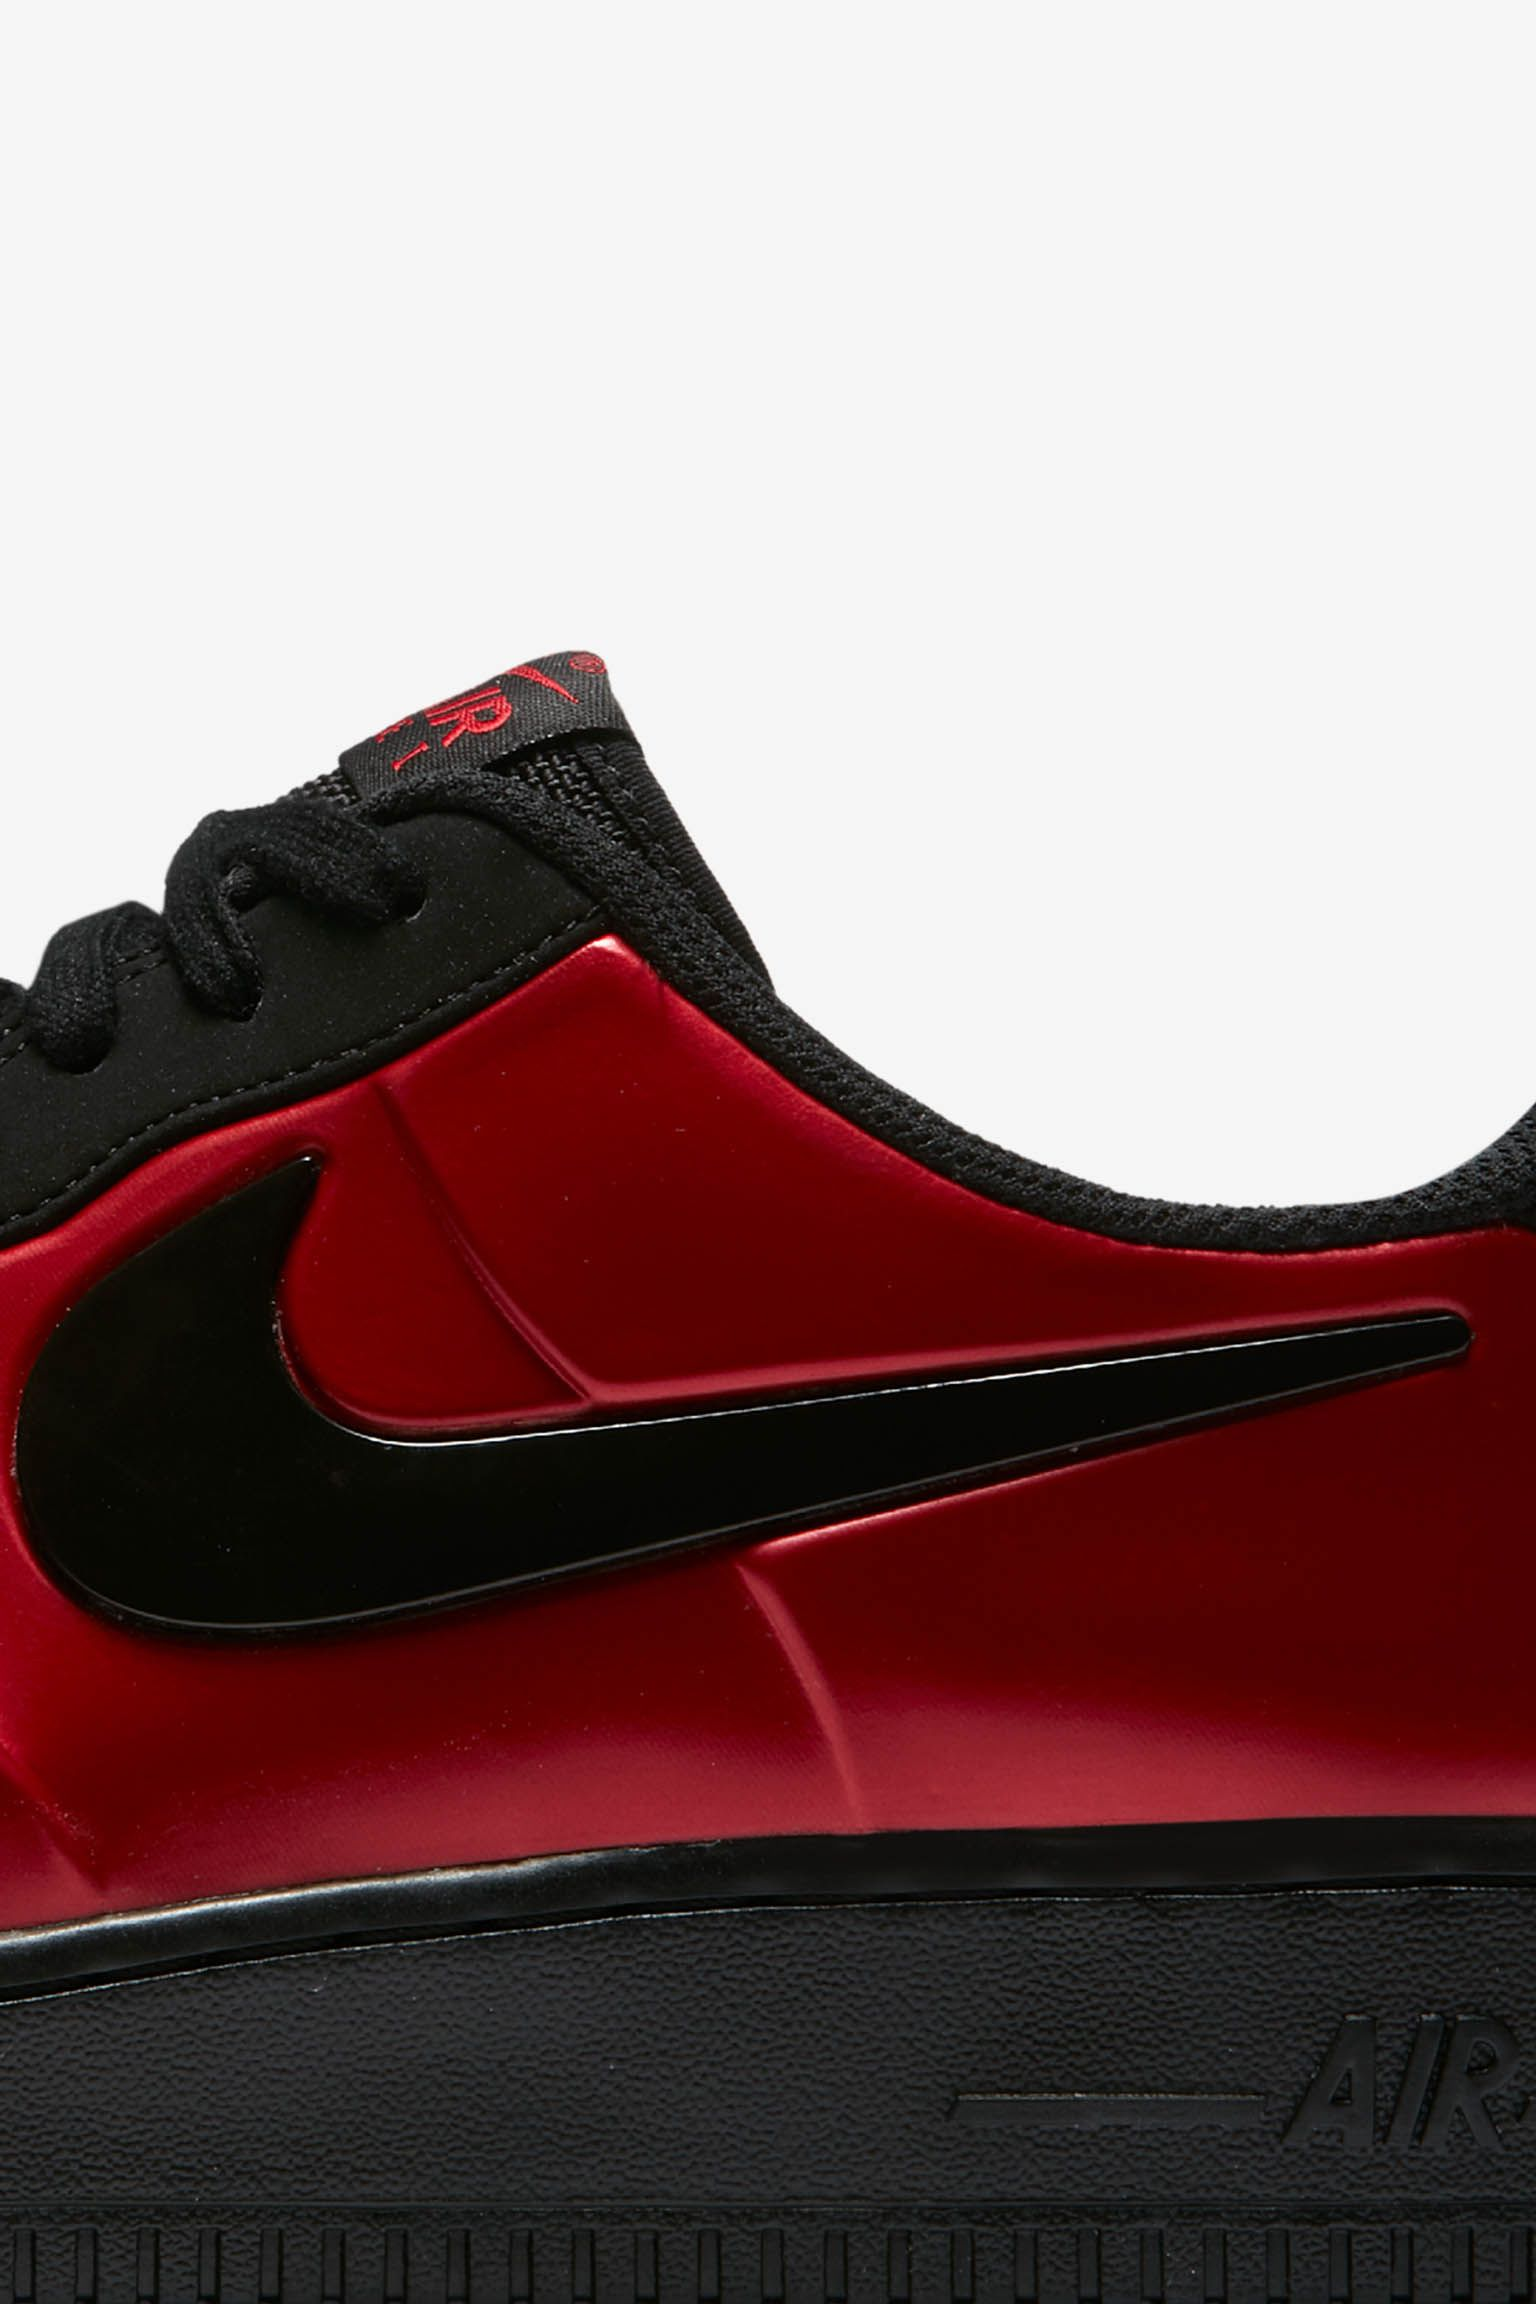 Nike Air Force 1 Foamposite Pro Cup 'Gym Red & Black' Release Date